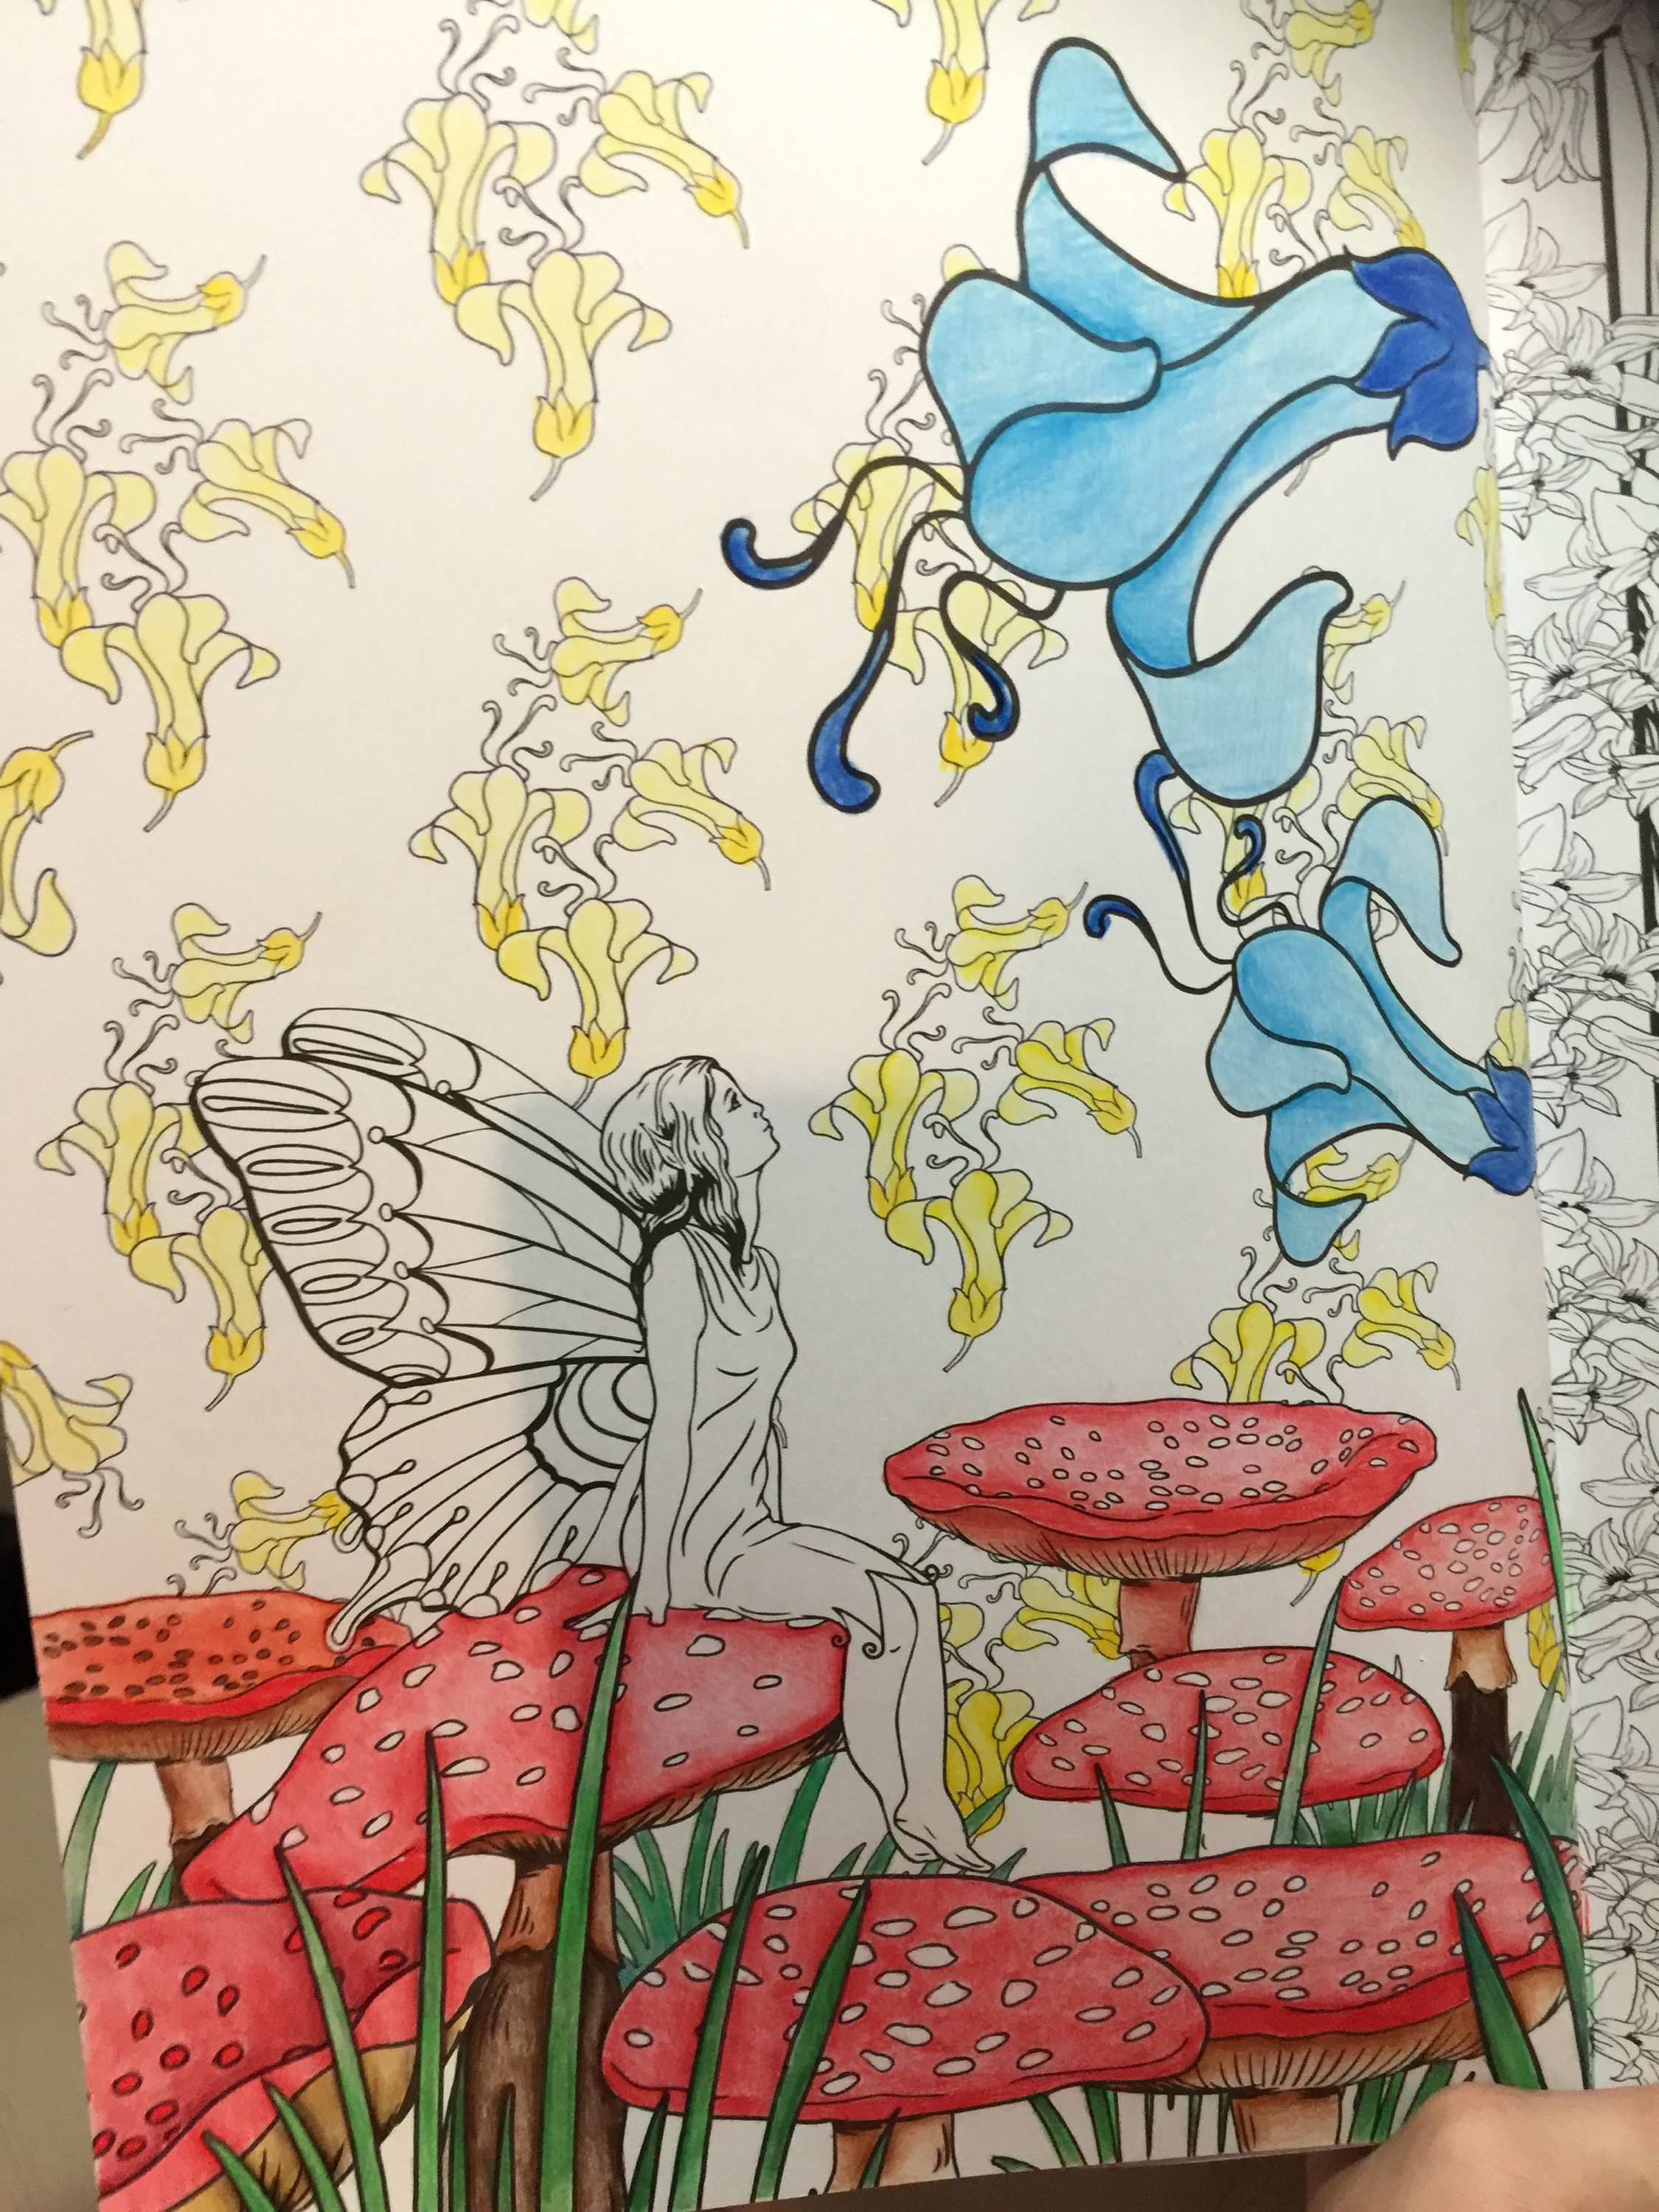 The enchanted forest coloring book review - Enchanted Forest Coloring Colouring Color Coloured Pencils Mindfulness Reviews Art Art Therapy Stress Relief Adult Coloring